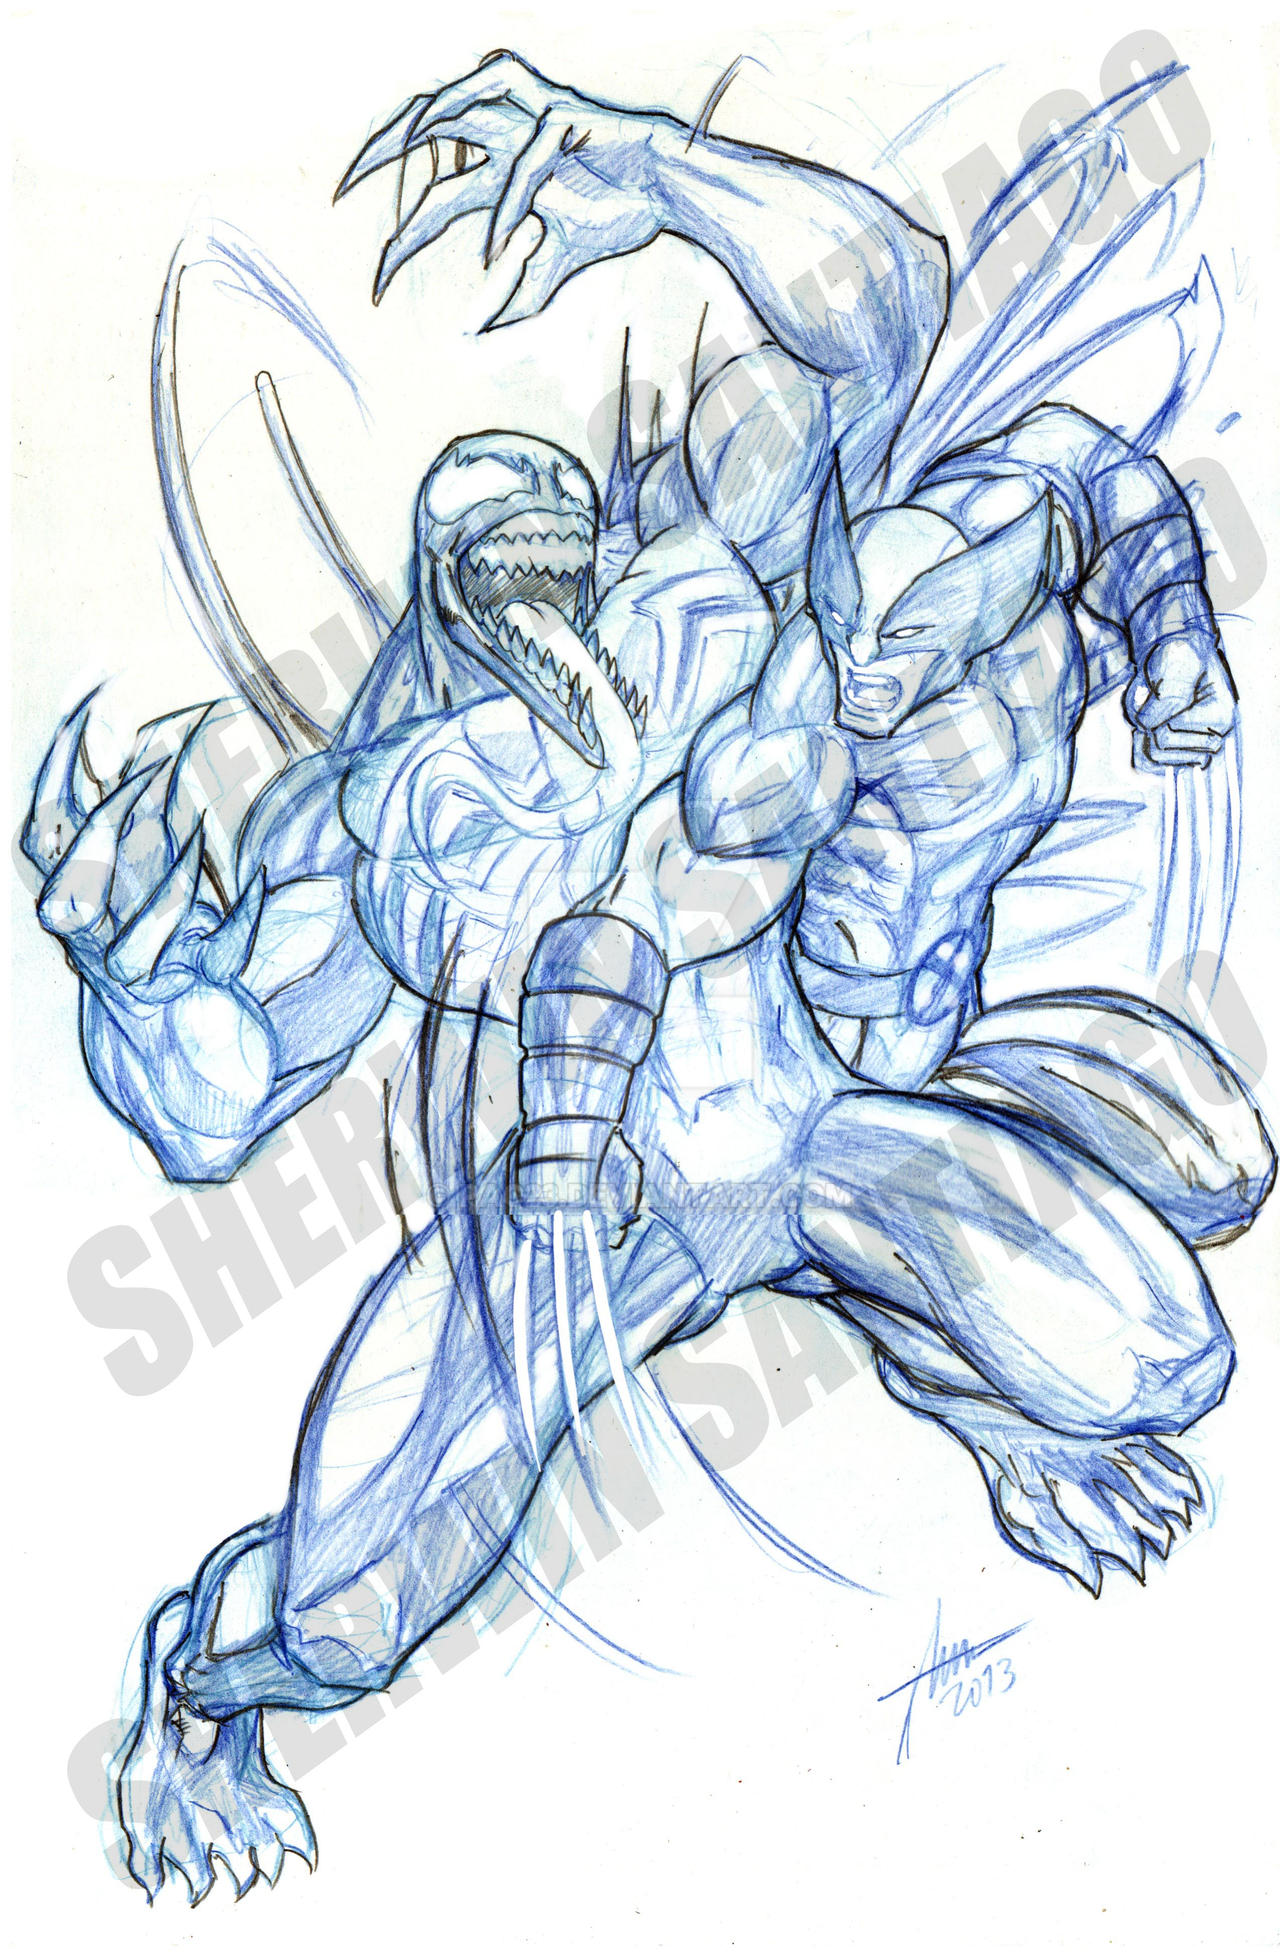 Venom Vs Wolverine Tattoo Venom Vs Wolverine Tattoo Pencil Stage By Pac